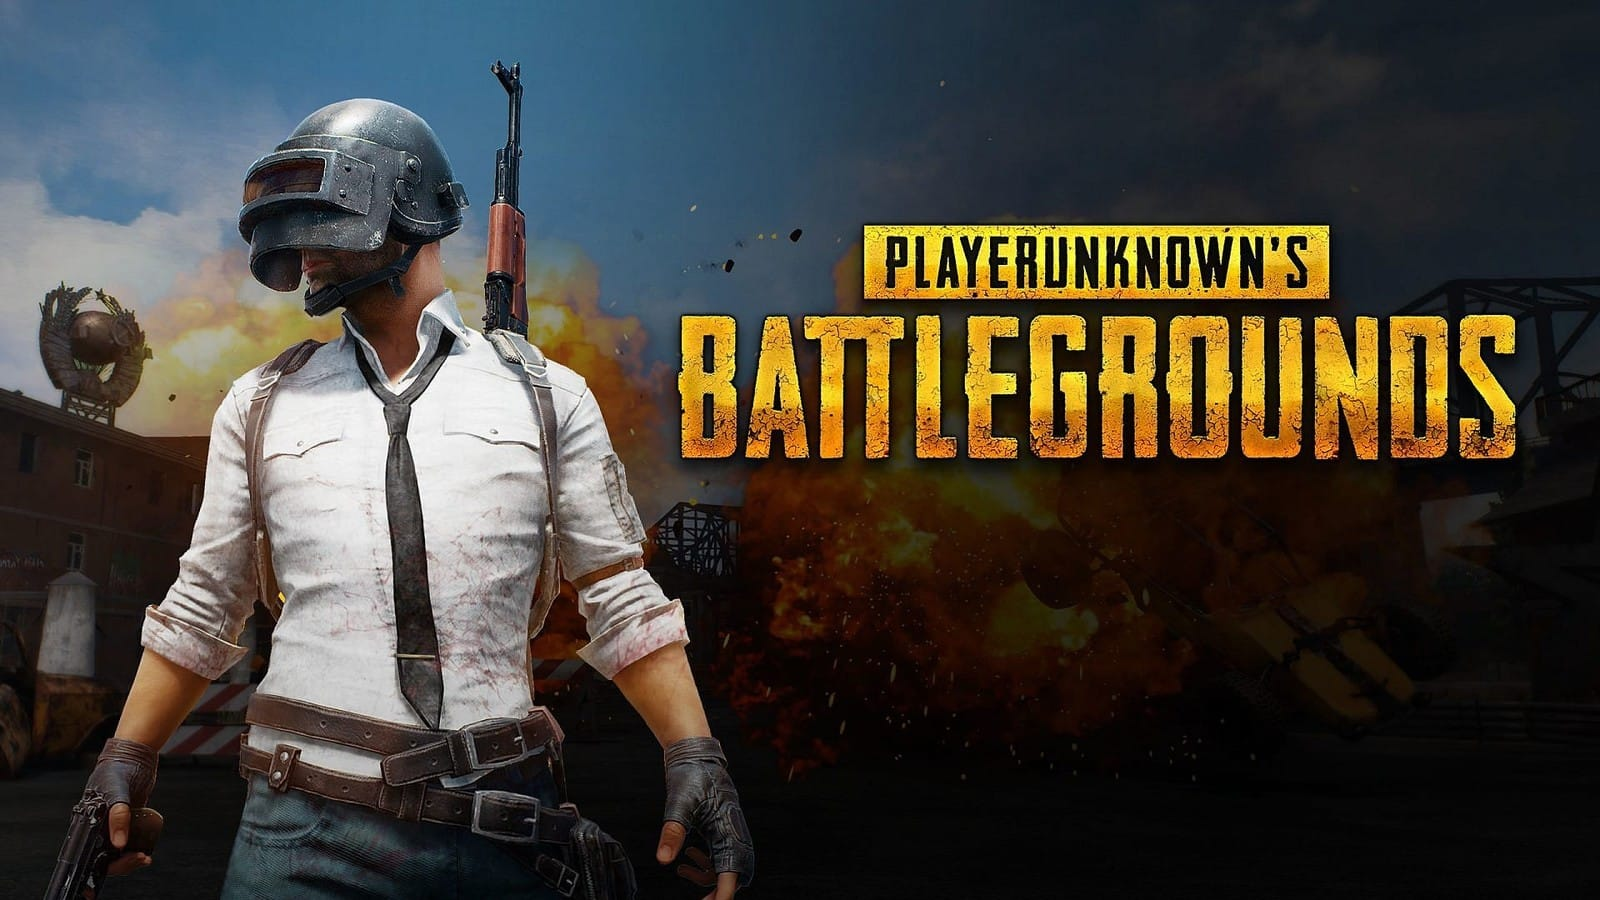 PLAYERUNKNOWN'S BATTLEGROUNDS - PC Game Key (Steam via GreenManGaming) - $23.99 - coupon: payday20